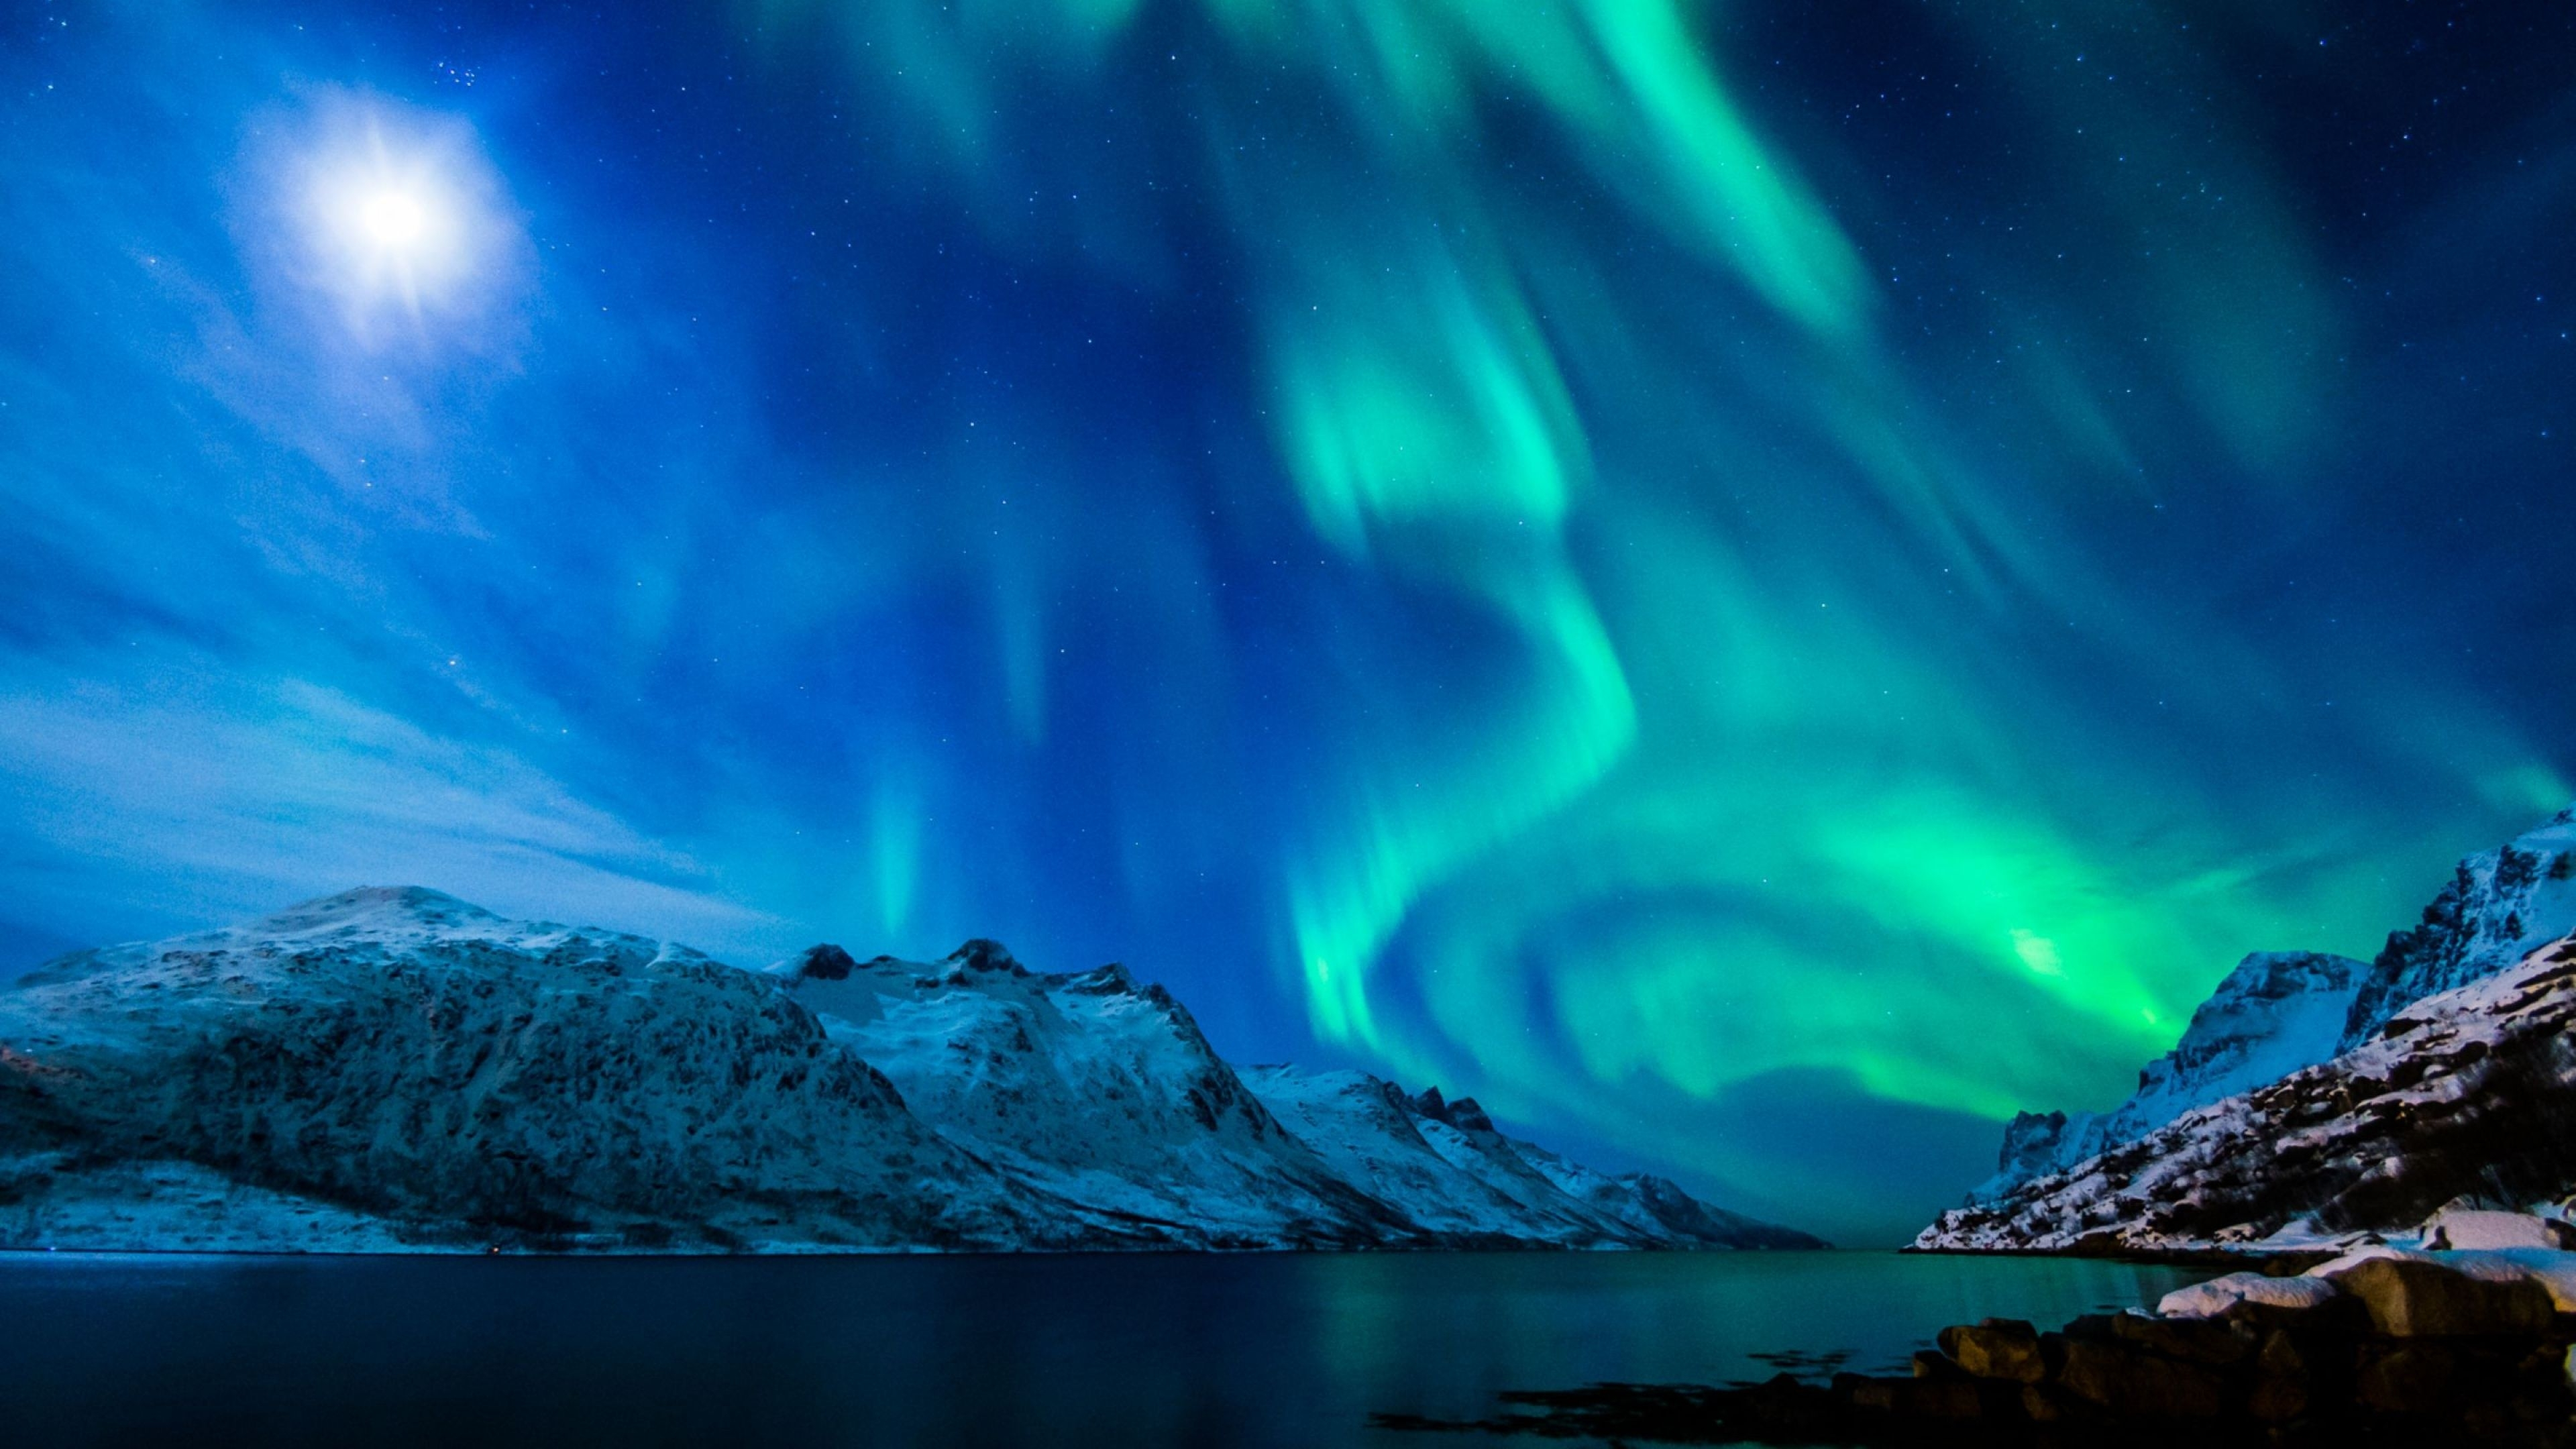 fisheye aurora borealis 4k ultra hd wallpaper |  northern lights